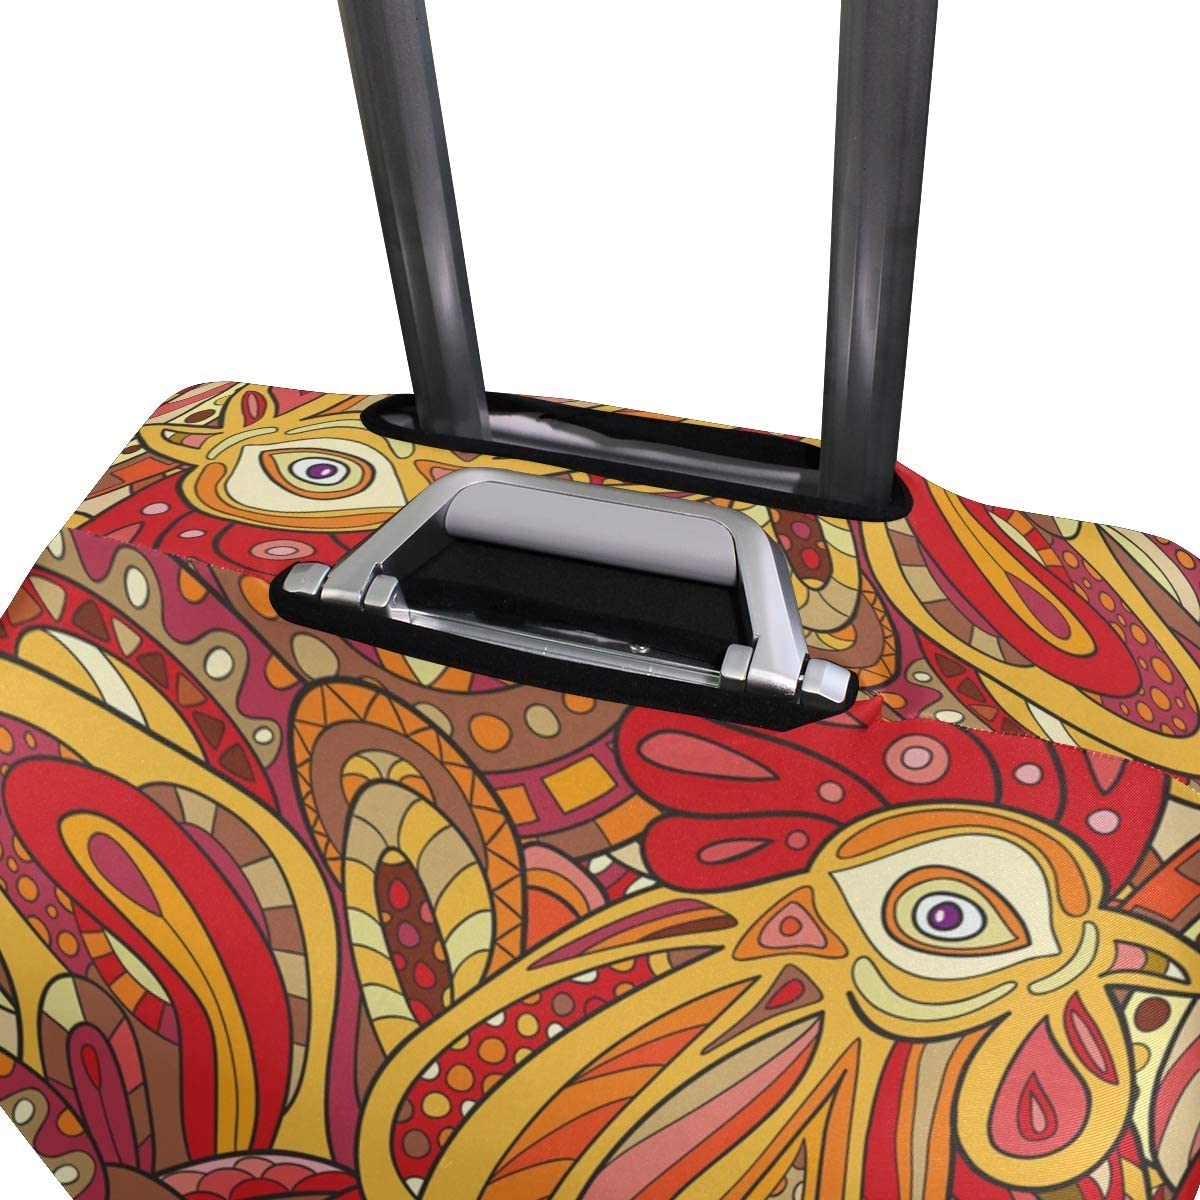 Trendy Luggage Cover Elastic Spandex Dust proof Case,Seamless Pattern With Bouquets Fashion Printed Suitcase Protector Washable Baggage Covers XL 29-32 in